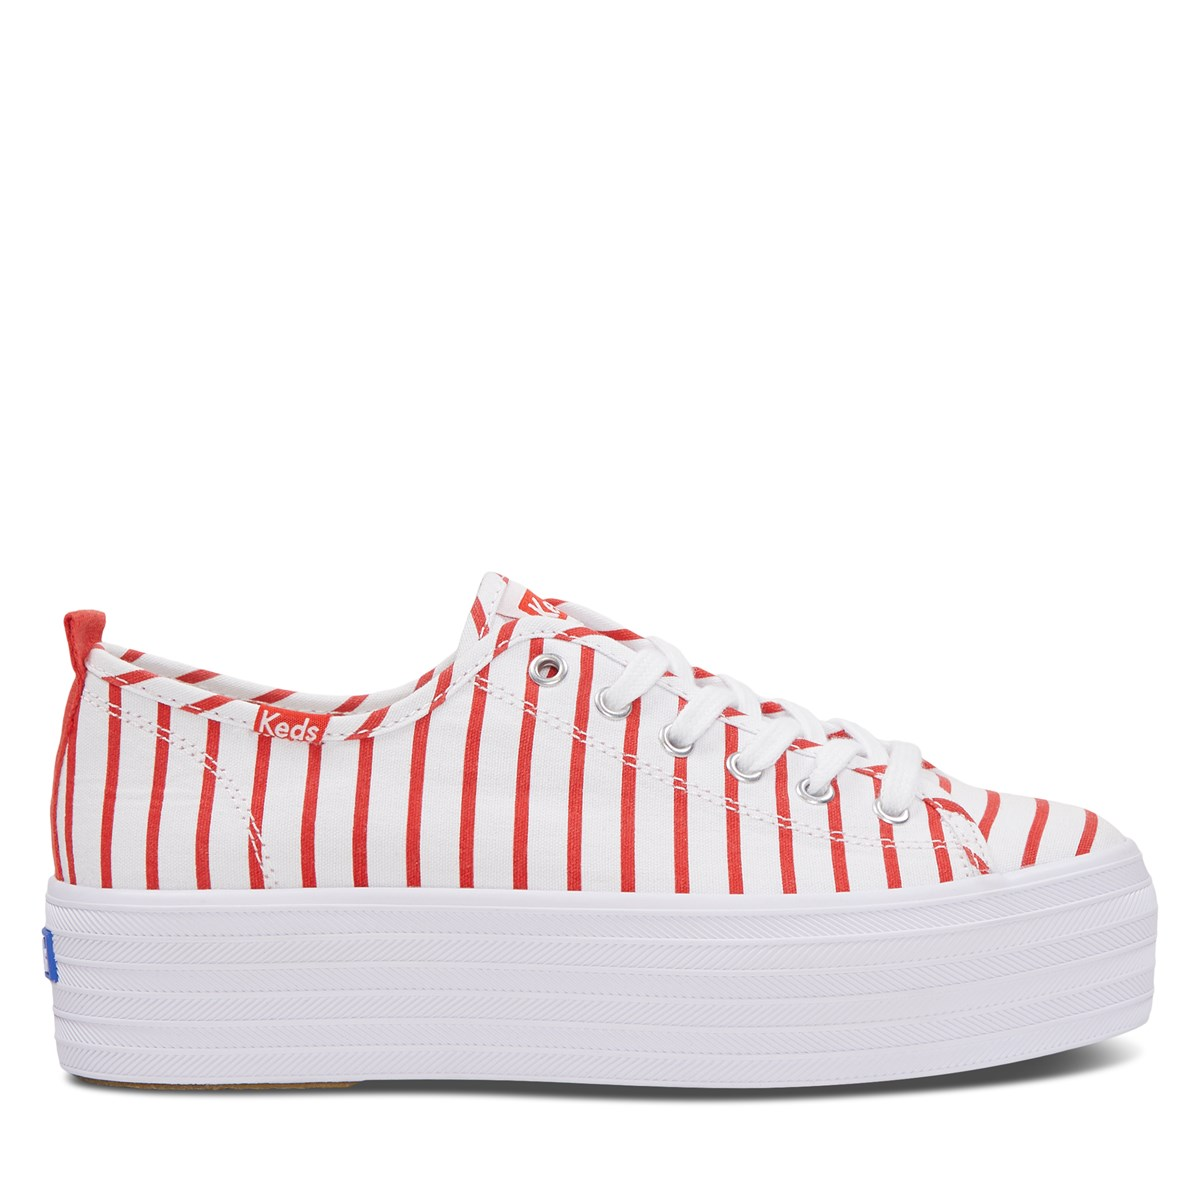 Women's Triple Up Flatforms in Striped Red